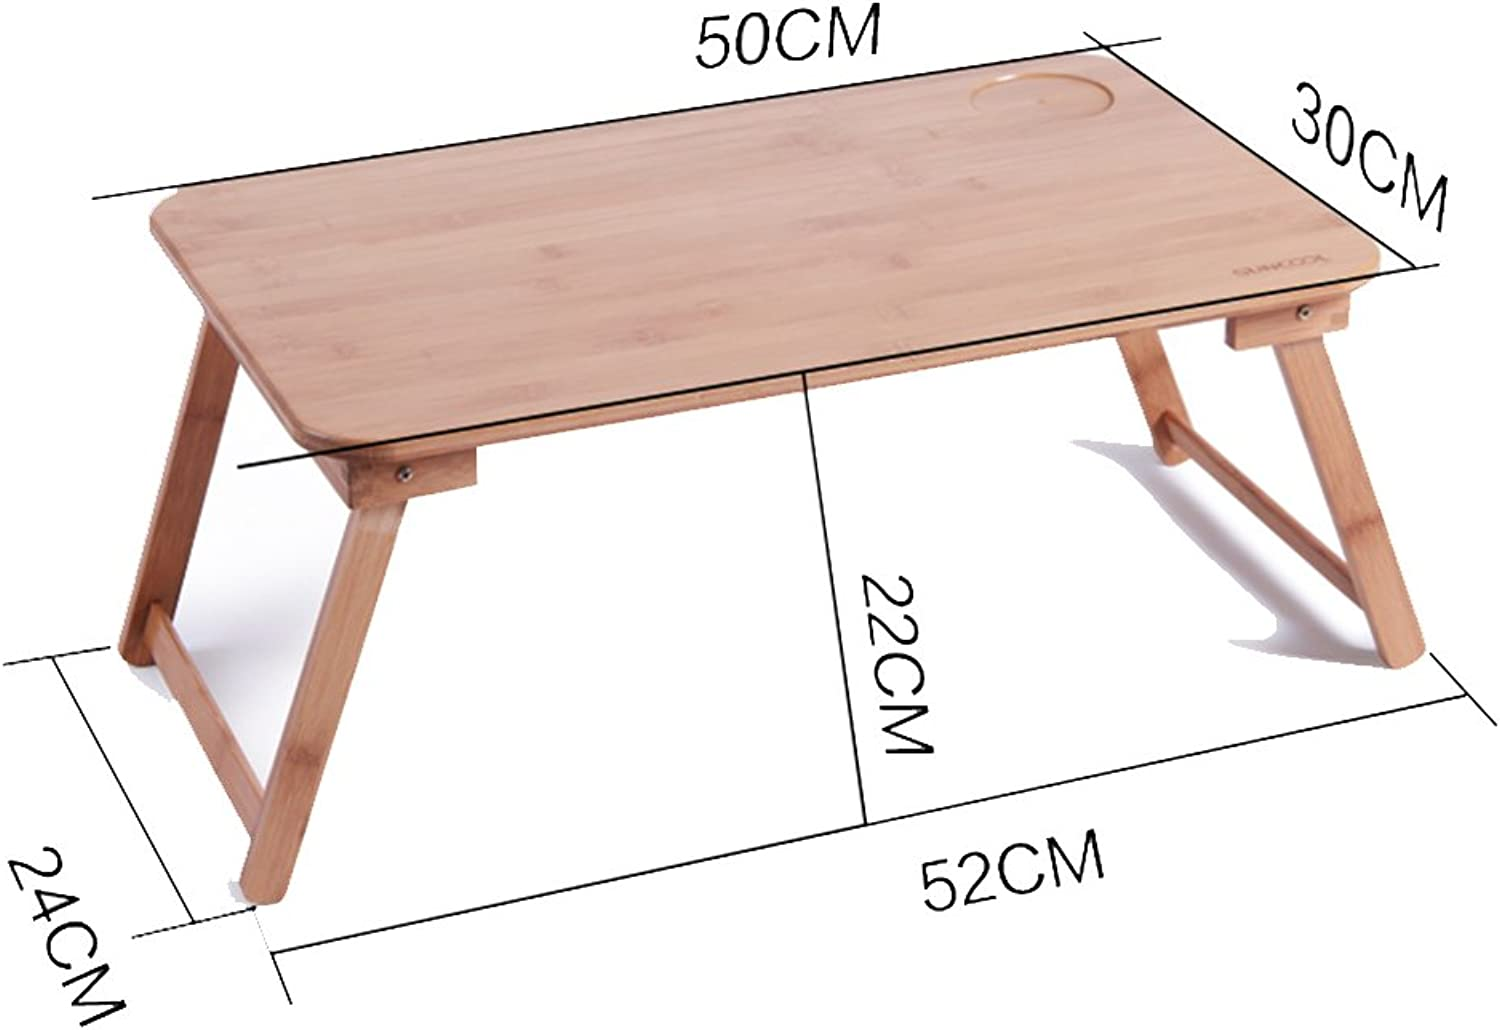 PENGFEI Laptop Computer Stands Portable Standing Desk Lapdesks Solid Wood Multifunction Foldable Bed Dining Table Bamboo, Wood color 5 Size (color   50x30CM Fixed Legs)